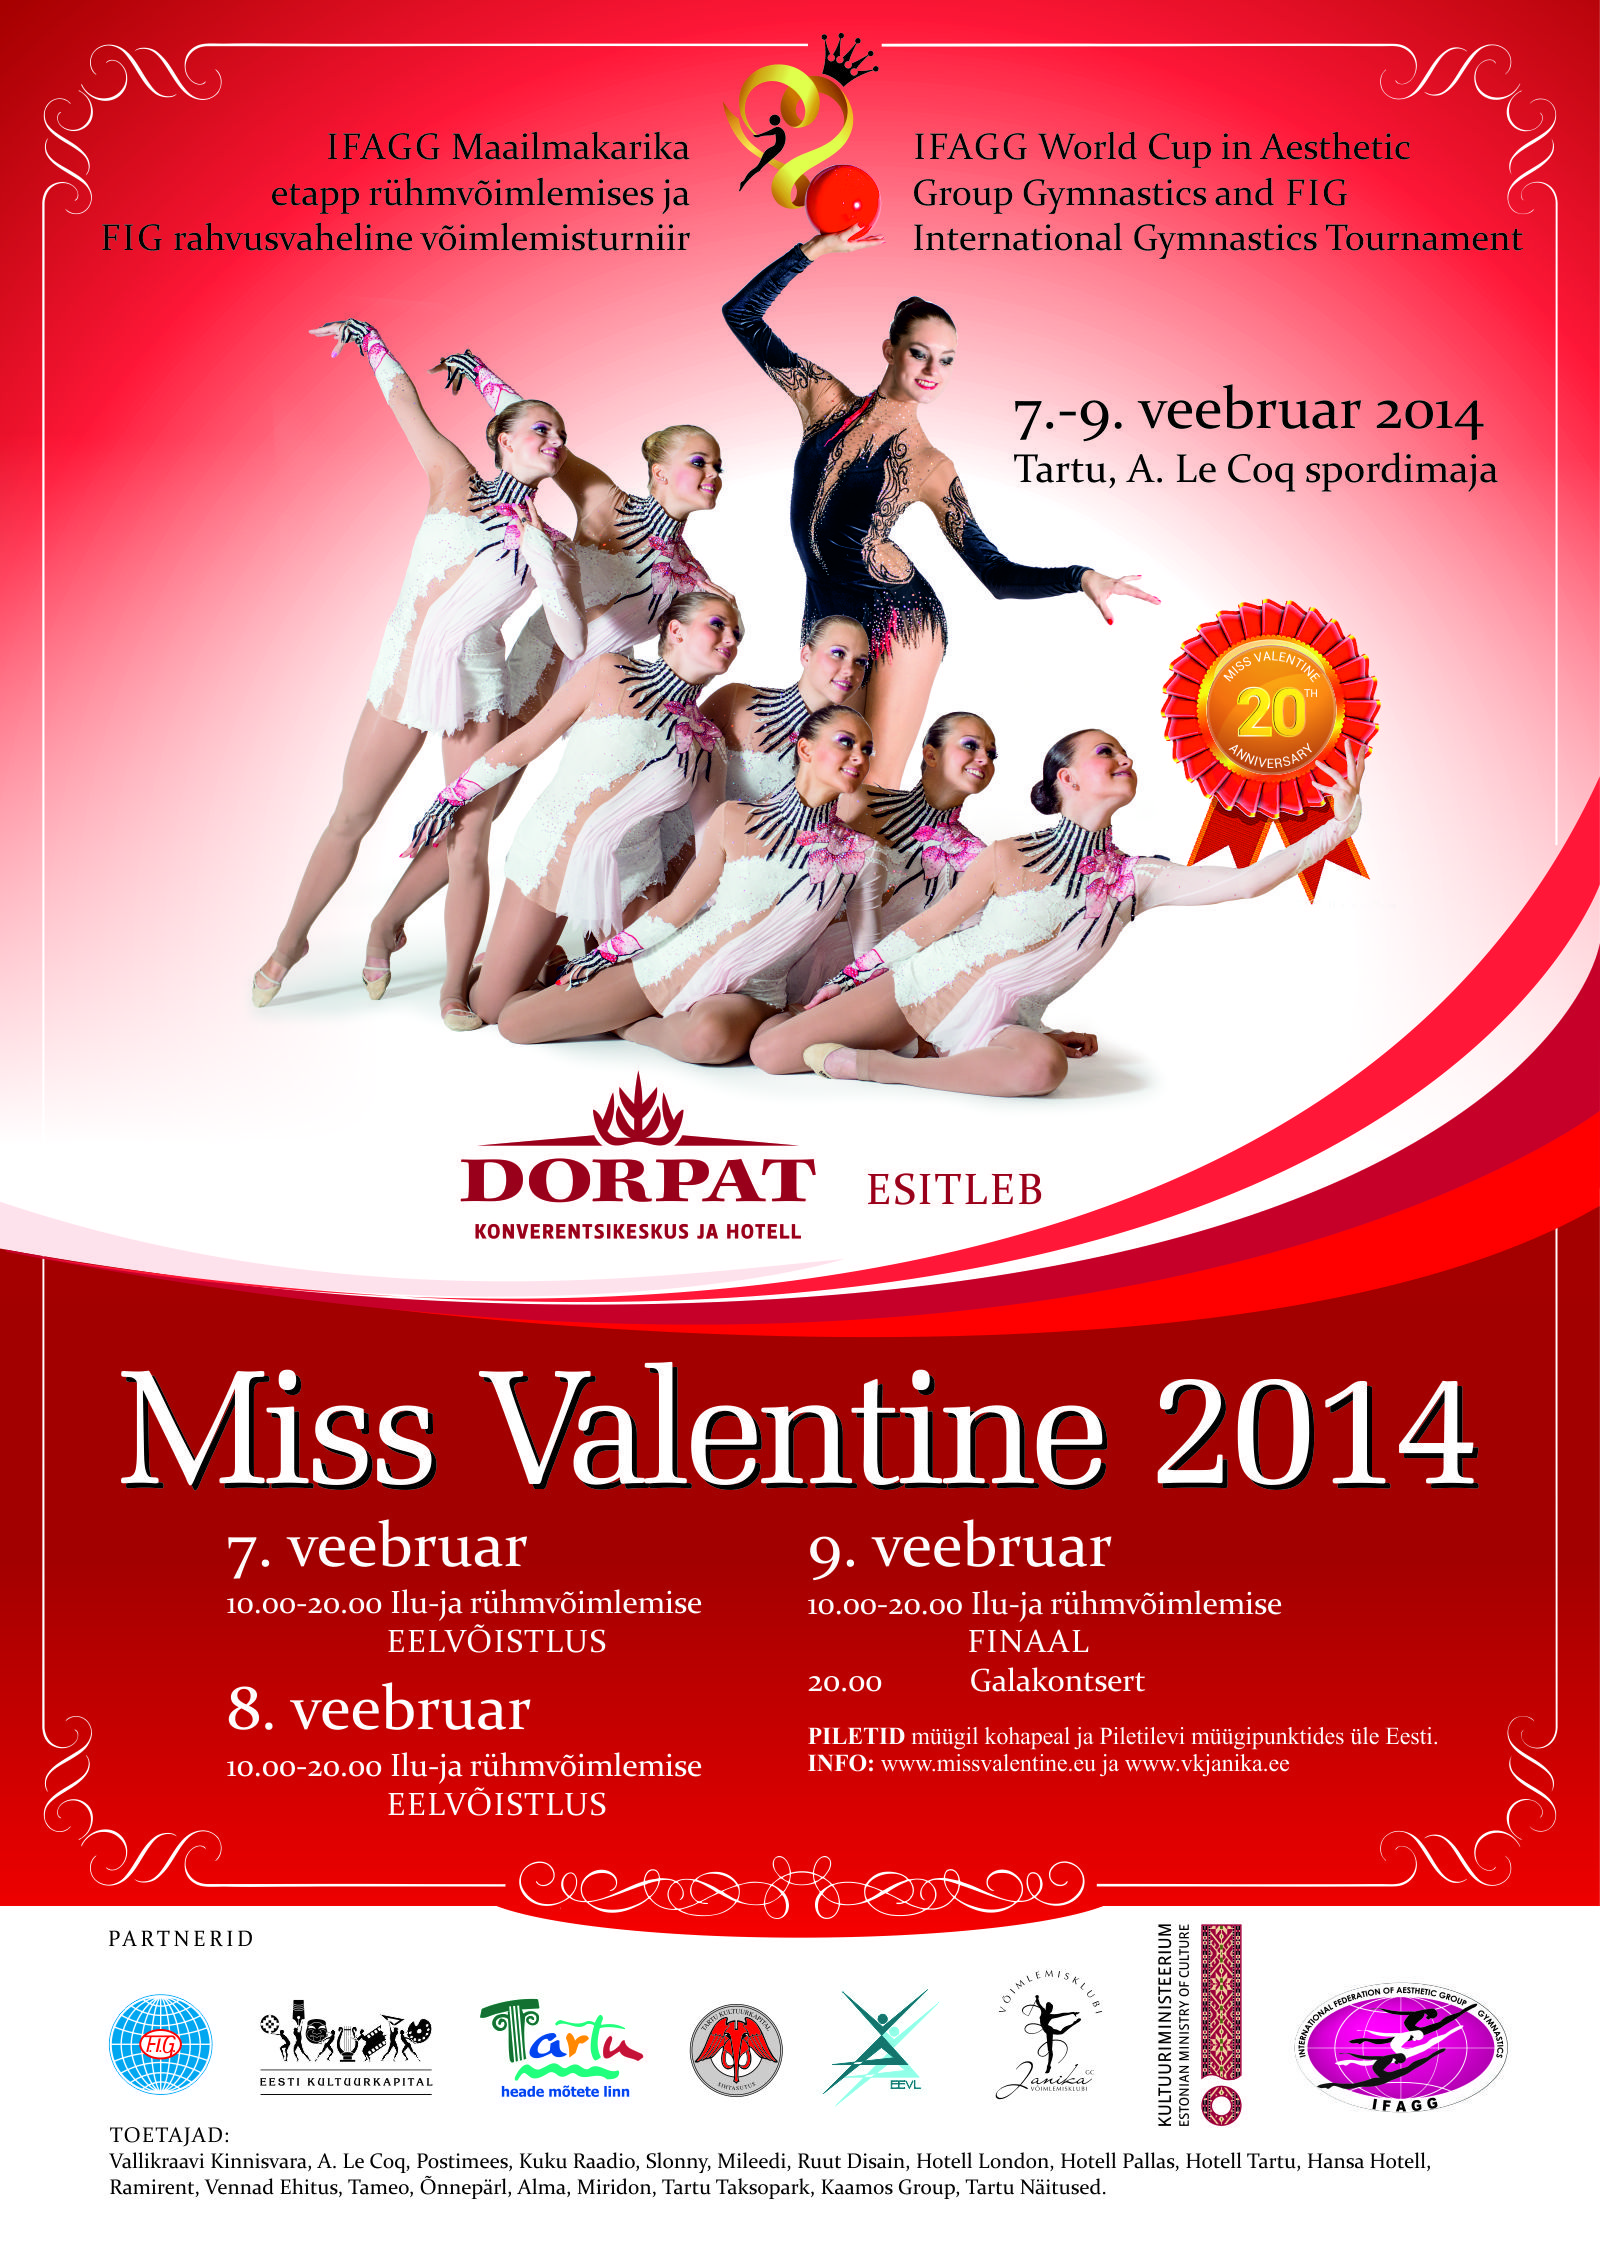 Miss Valentine Is An International Tournament Of Rhythmic Gymnastics,  Hosted In Tartu, Estonia. This Year It Will Be The 20th Miss Valentine  Tournament In A ...